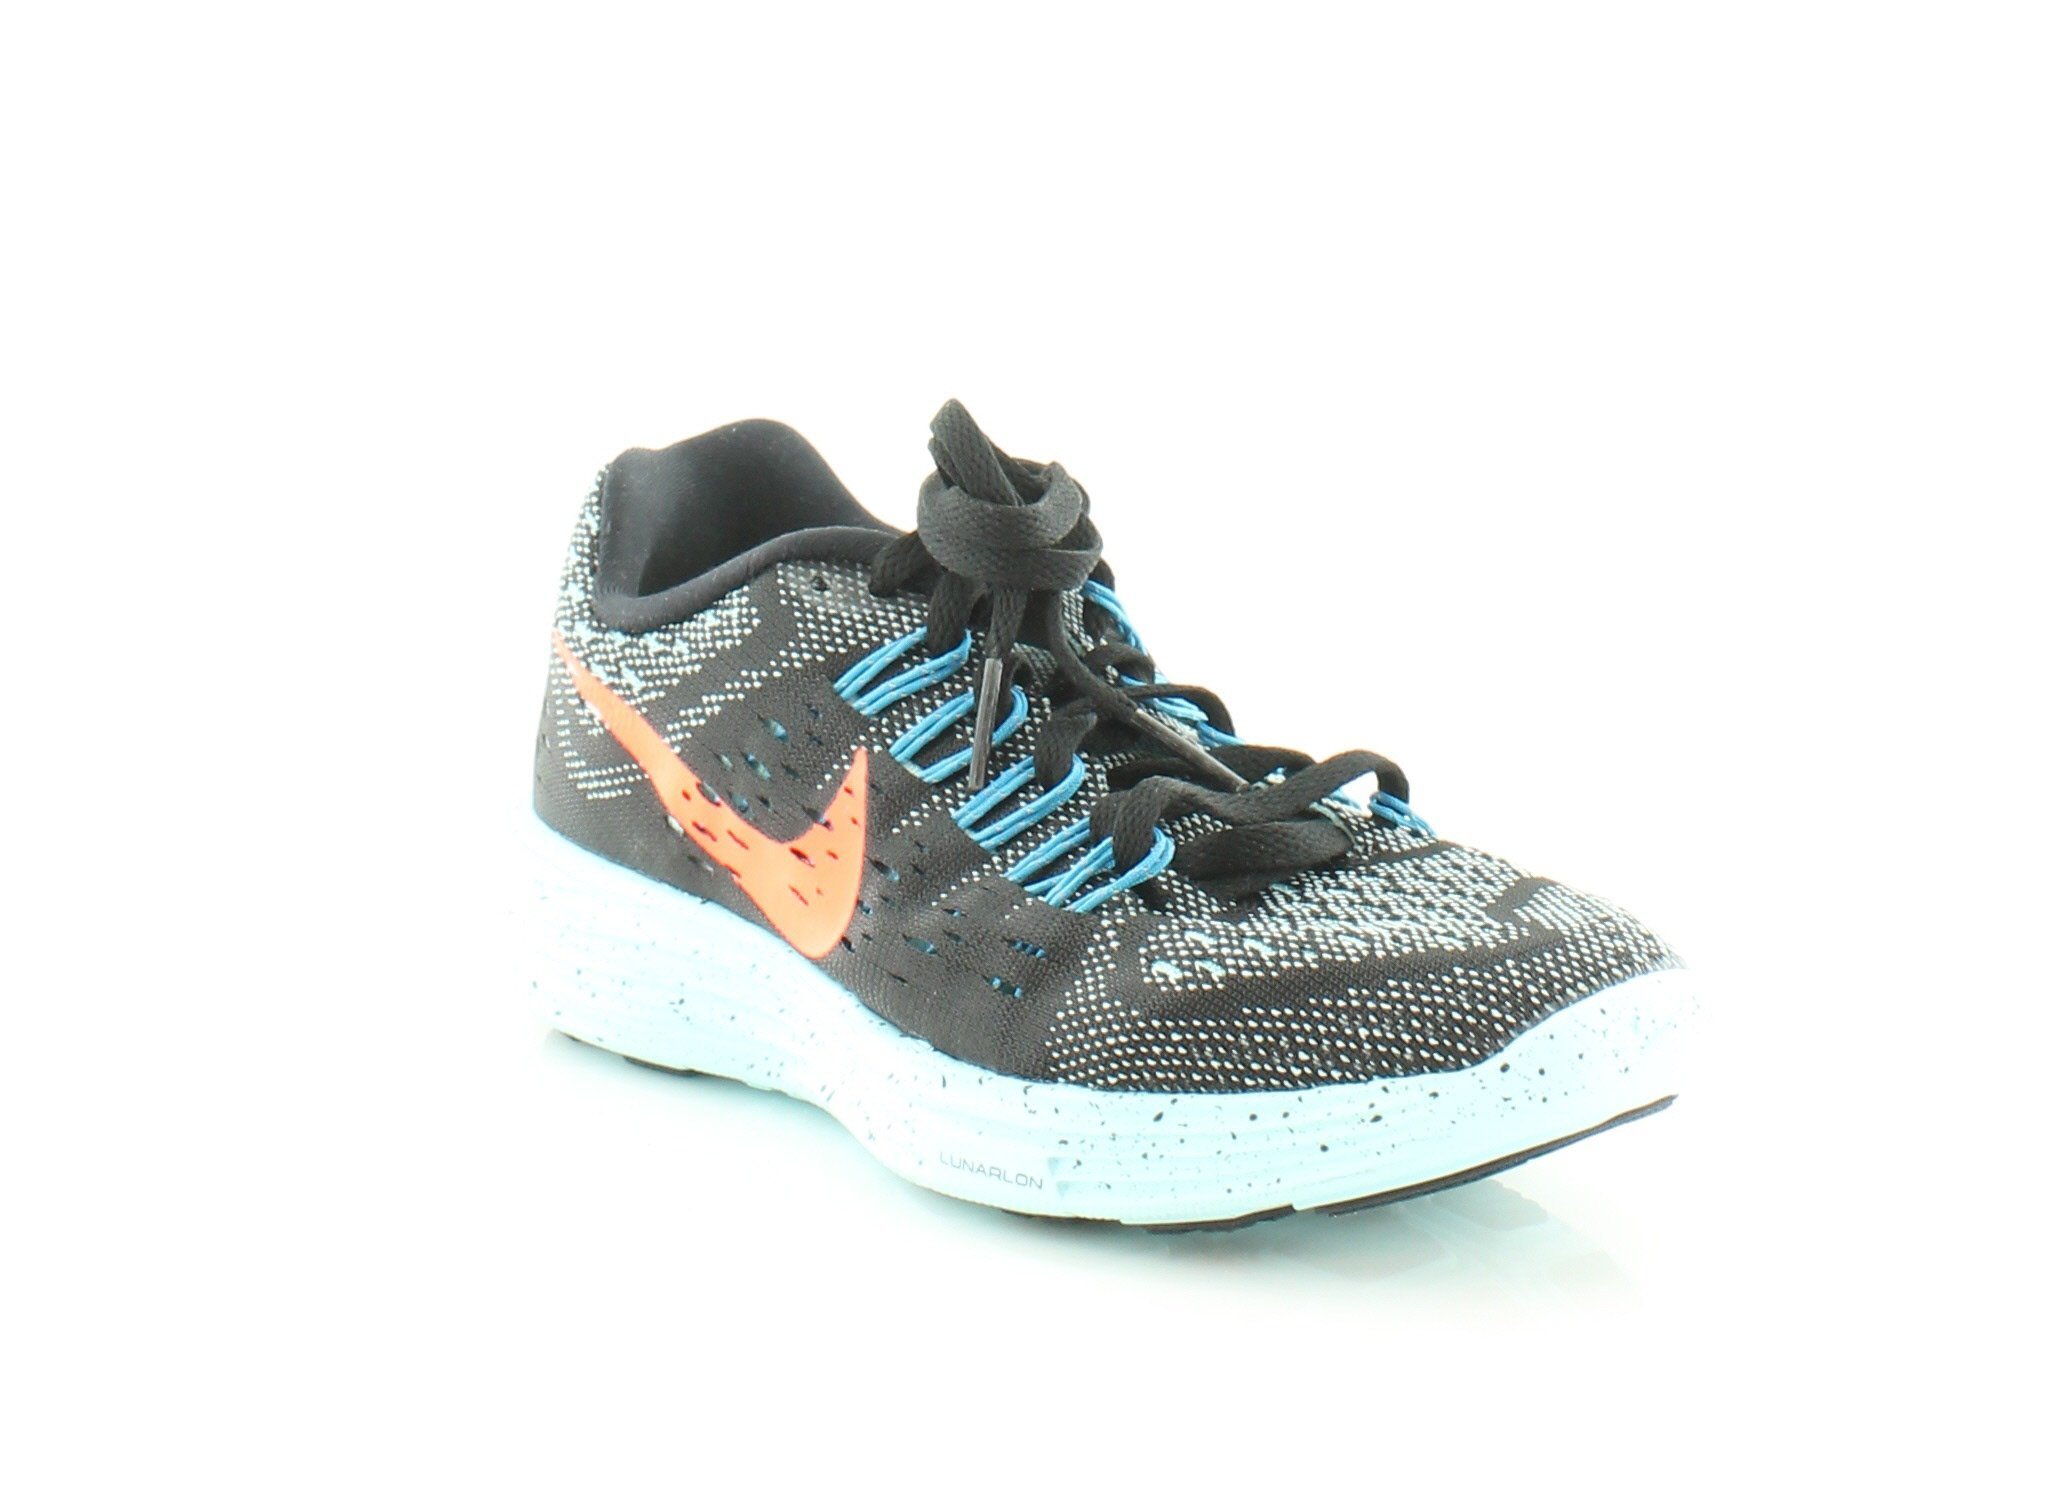 new products eee39 853a3 Galleon - Nike Women s LunarTempo Running Shoes 5 M US Black Copa Blue  Lagoon Hyper Orange